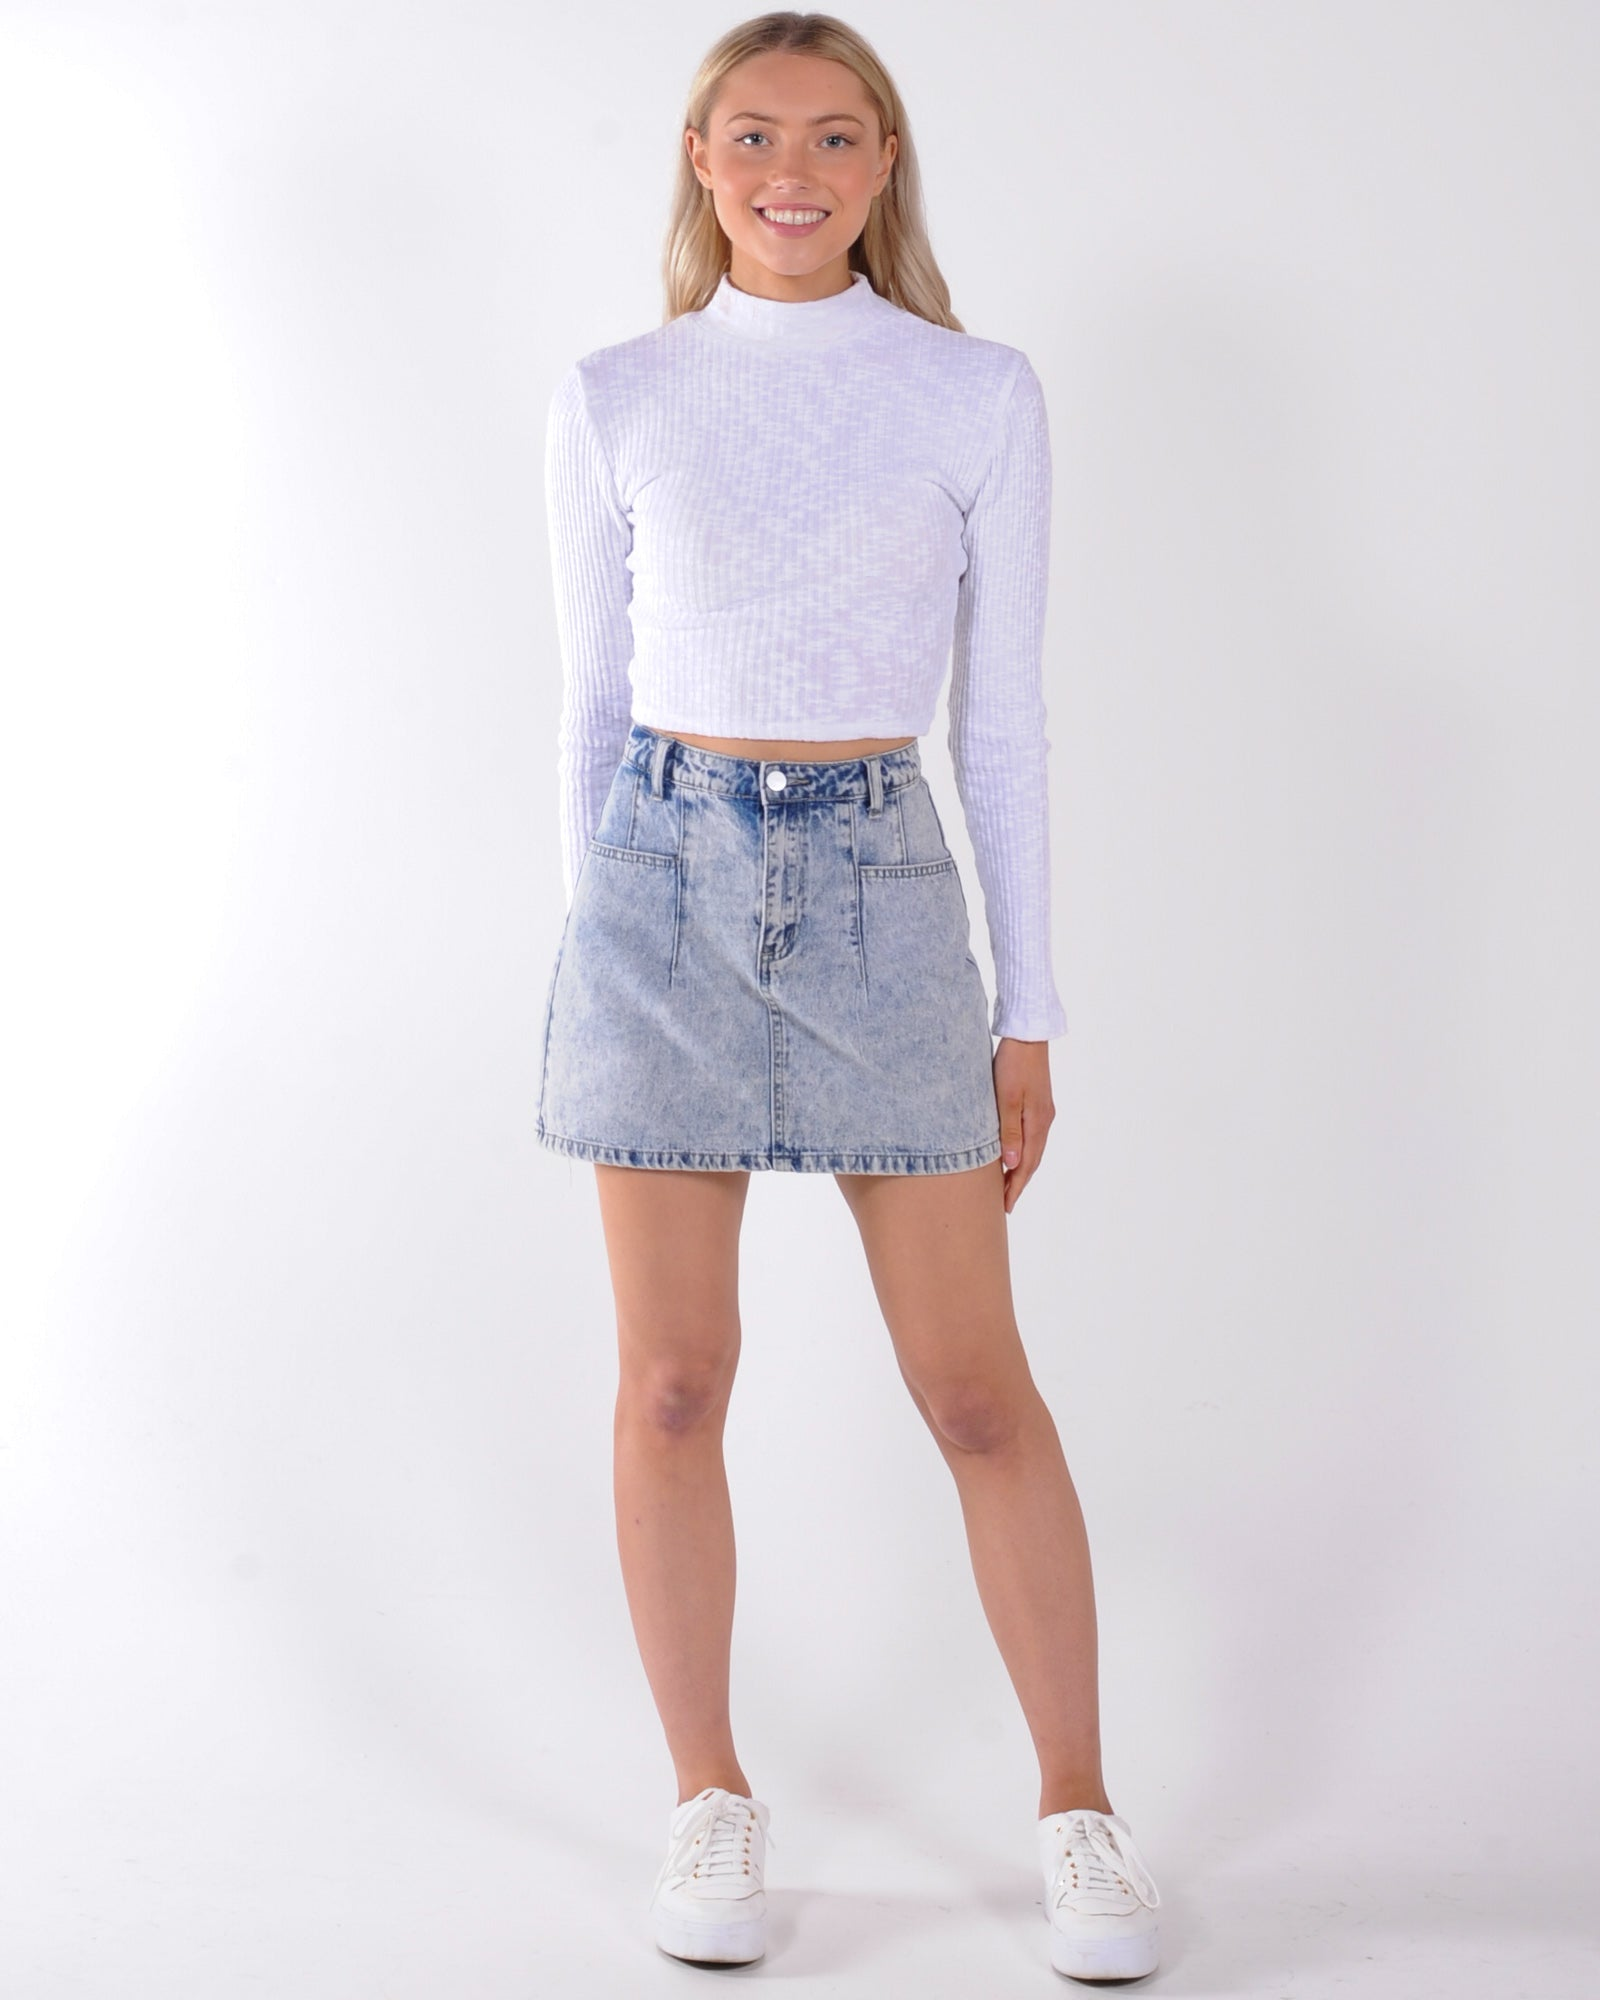 All About Eve Drew Long Sleeve Top - White